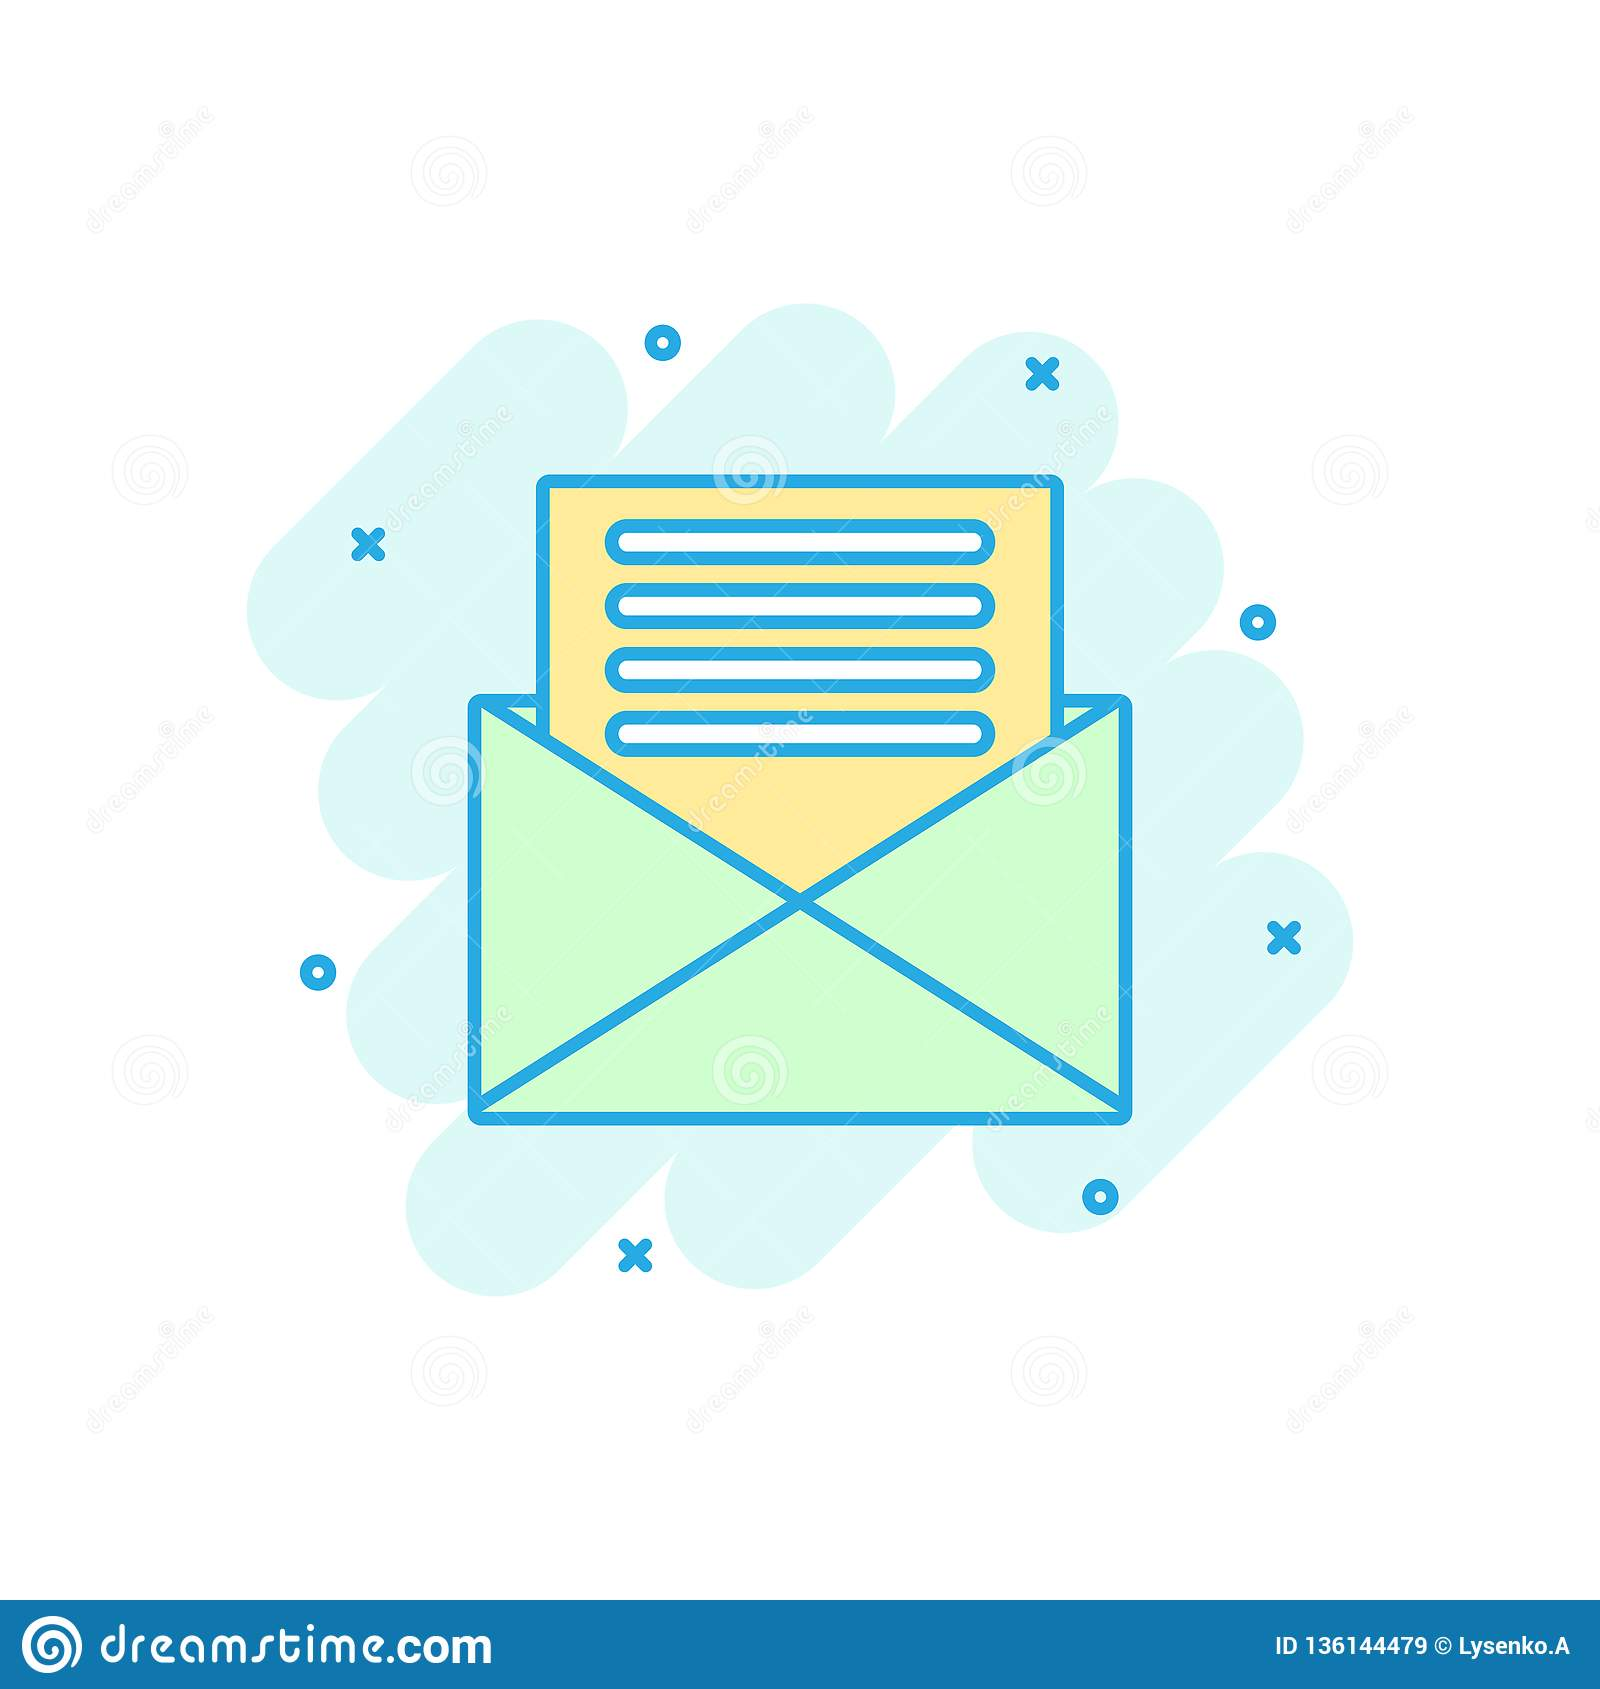 Mail envelope icon in comic style. Email message vector cartoon illustration pictogram. Mailbox e-mail business concept splash